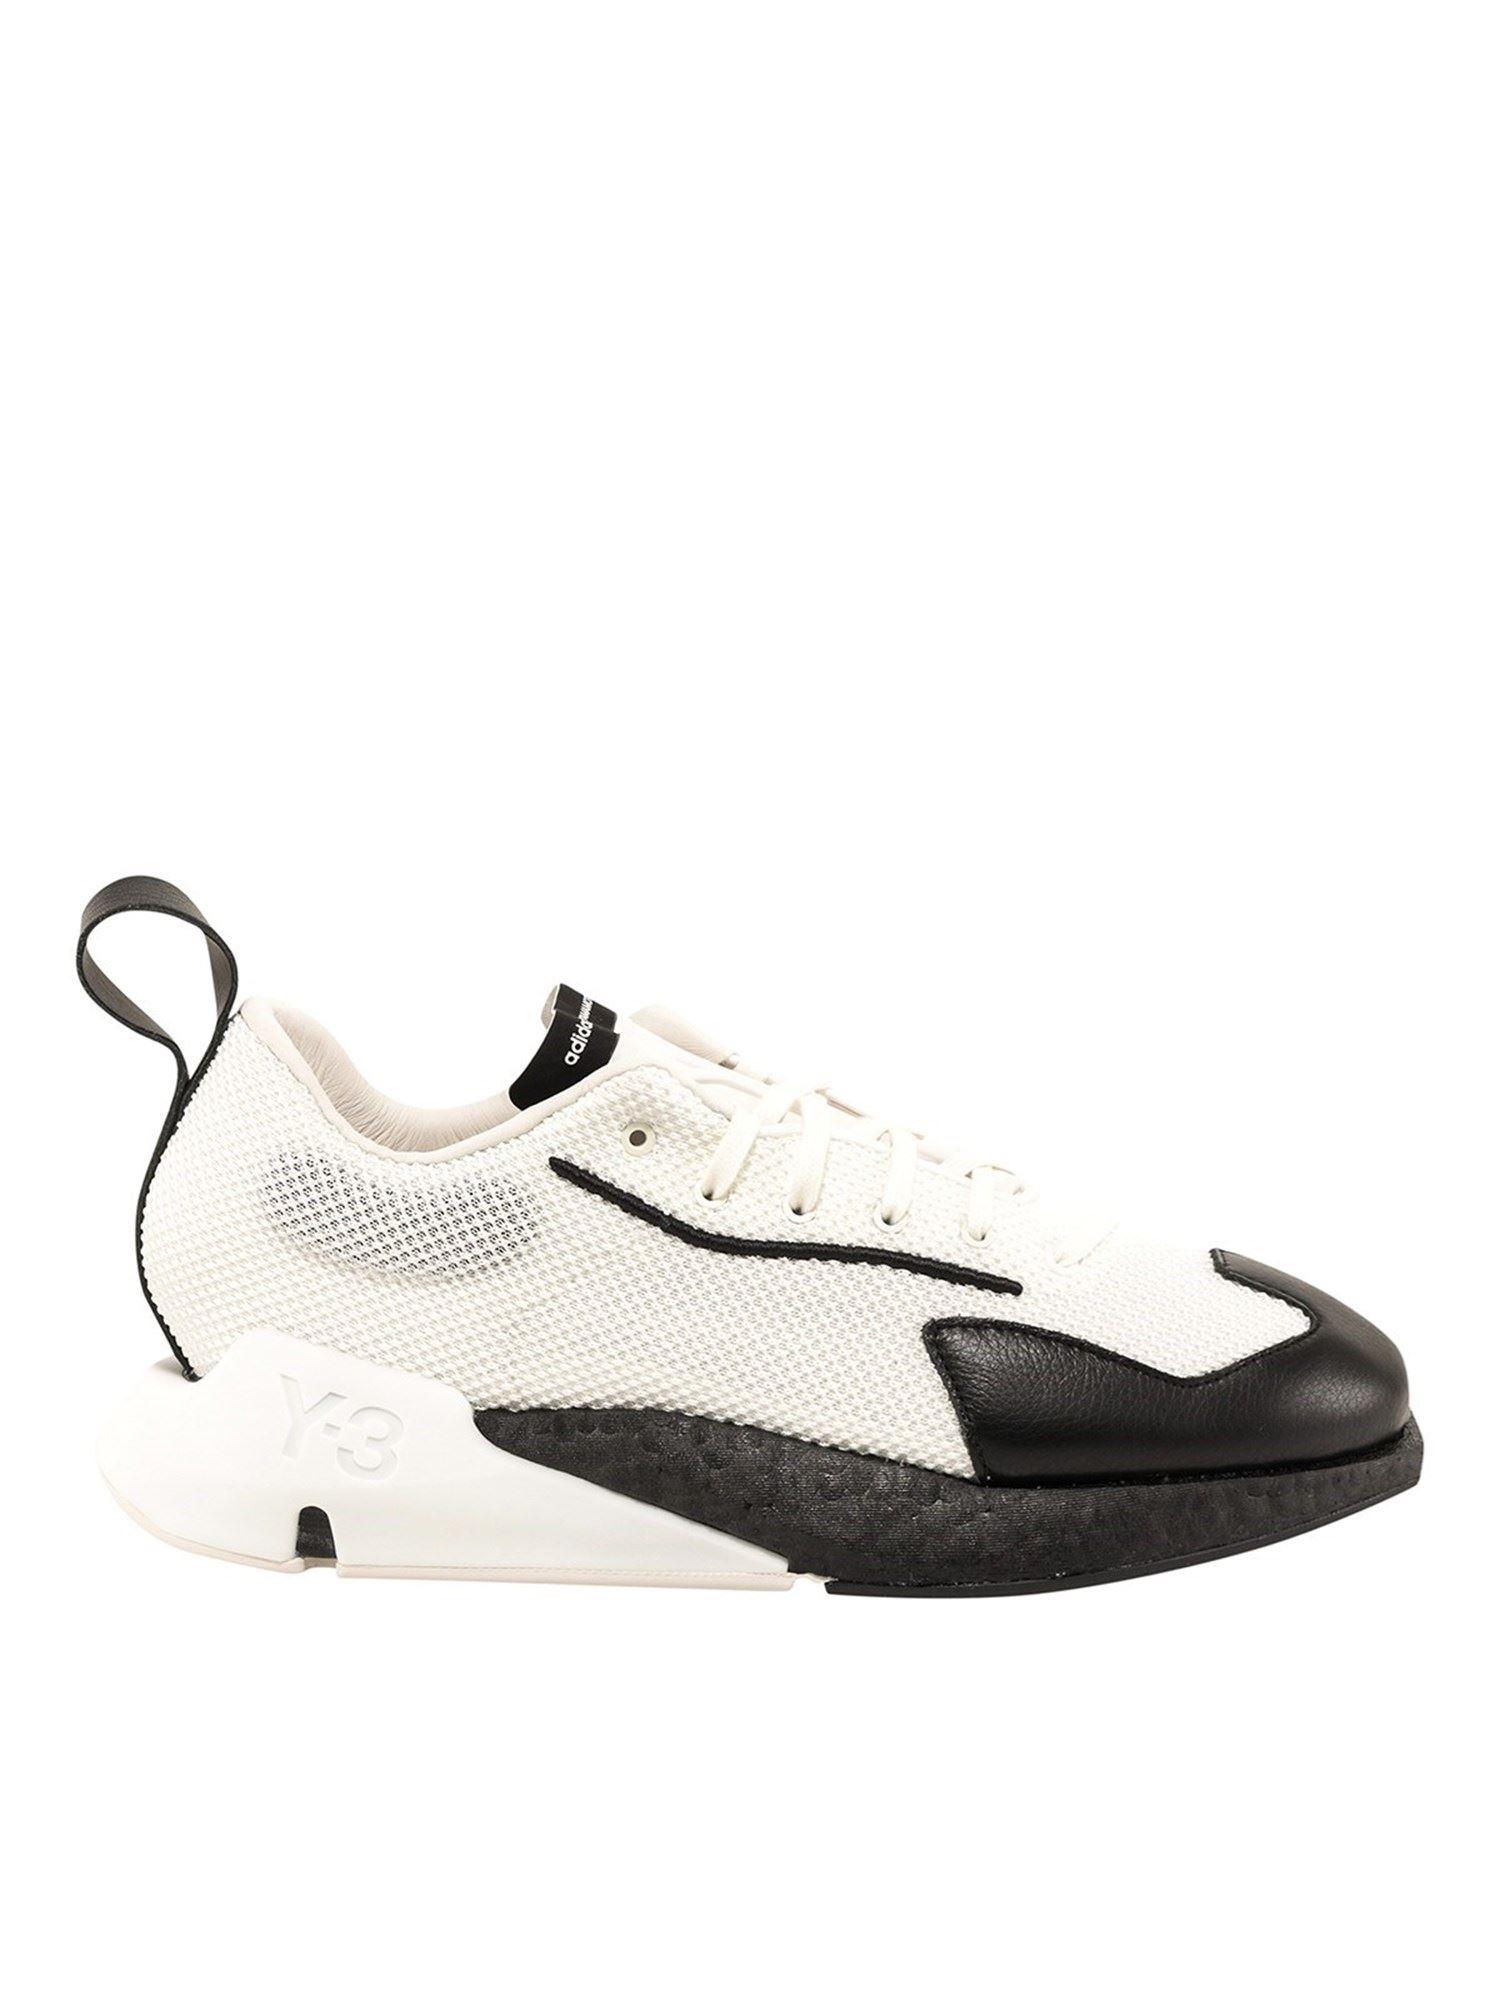 Y-3 Shoes ORISAN SNEAKERS IN WHITE AND BLACK